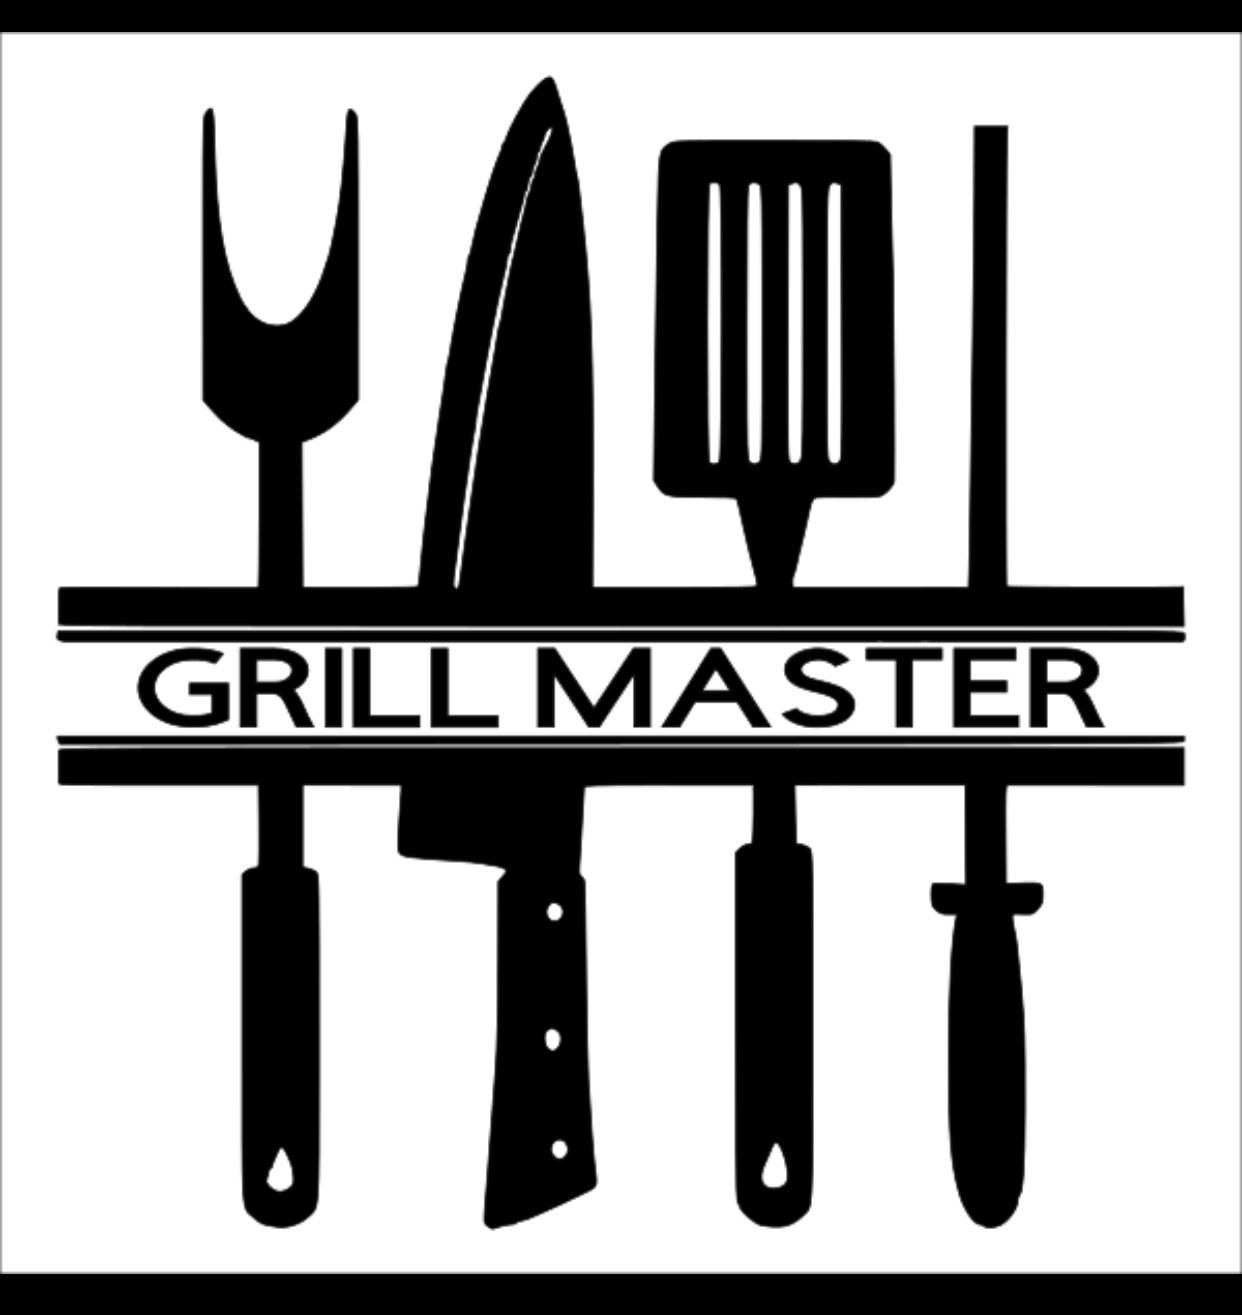 Grill Master 12x12